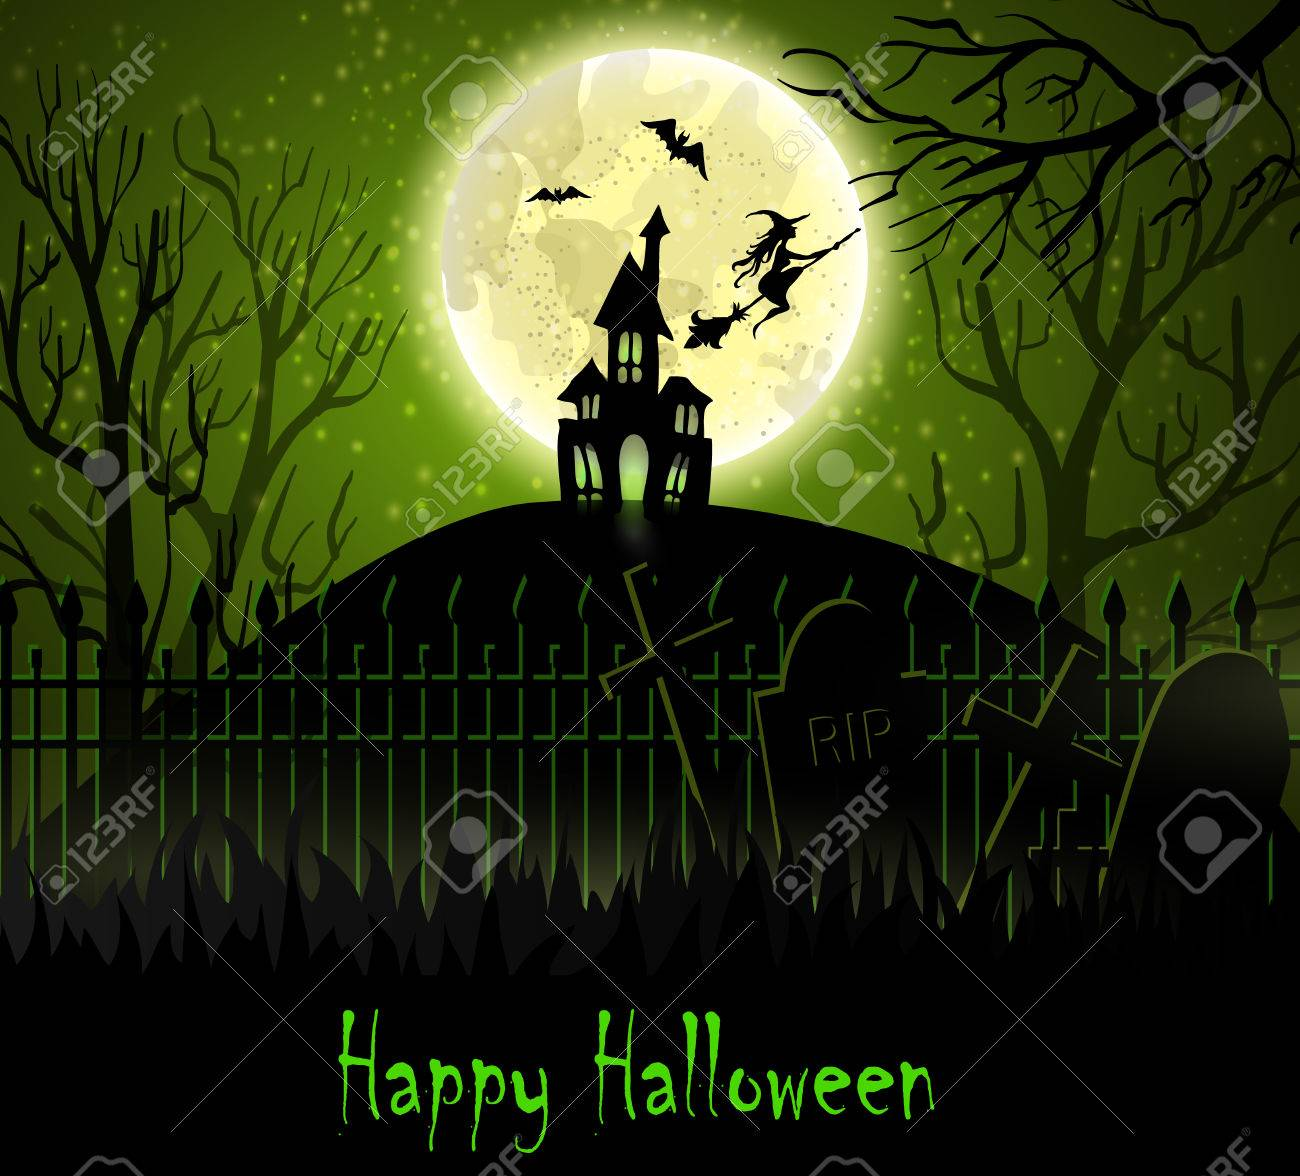 Halloween Spooky House.Halloween Spooky Background With Moon Fence Haunted House Witch